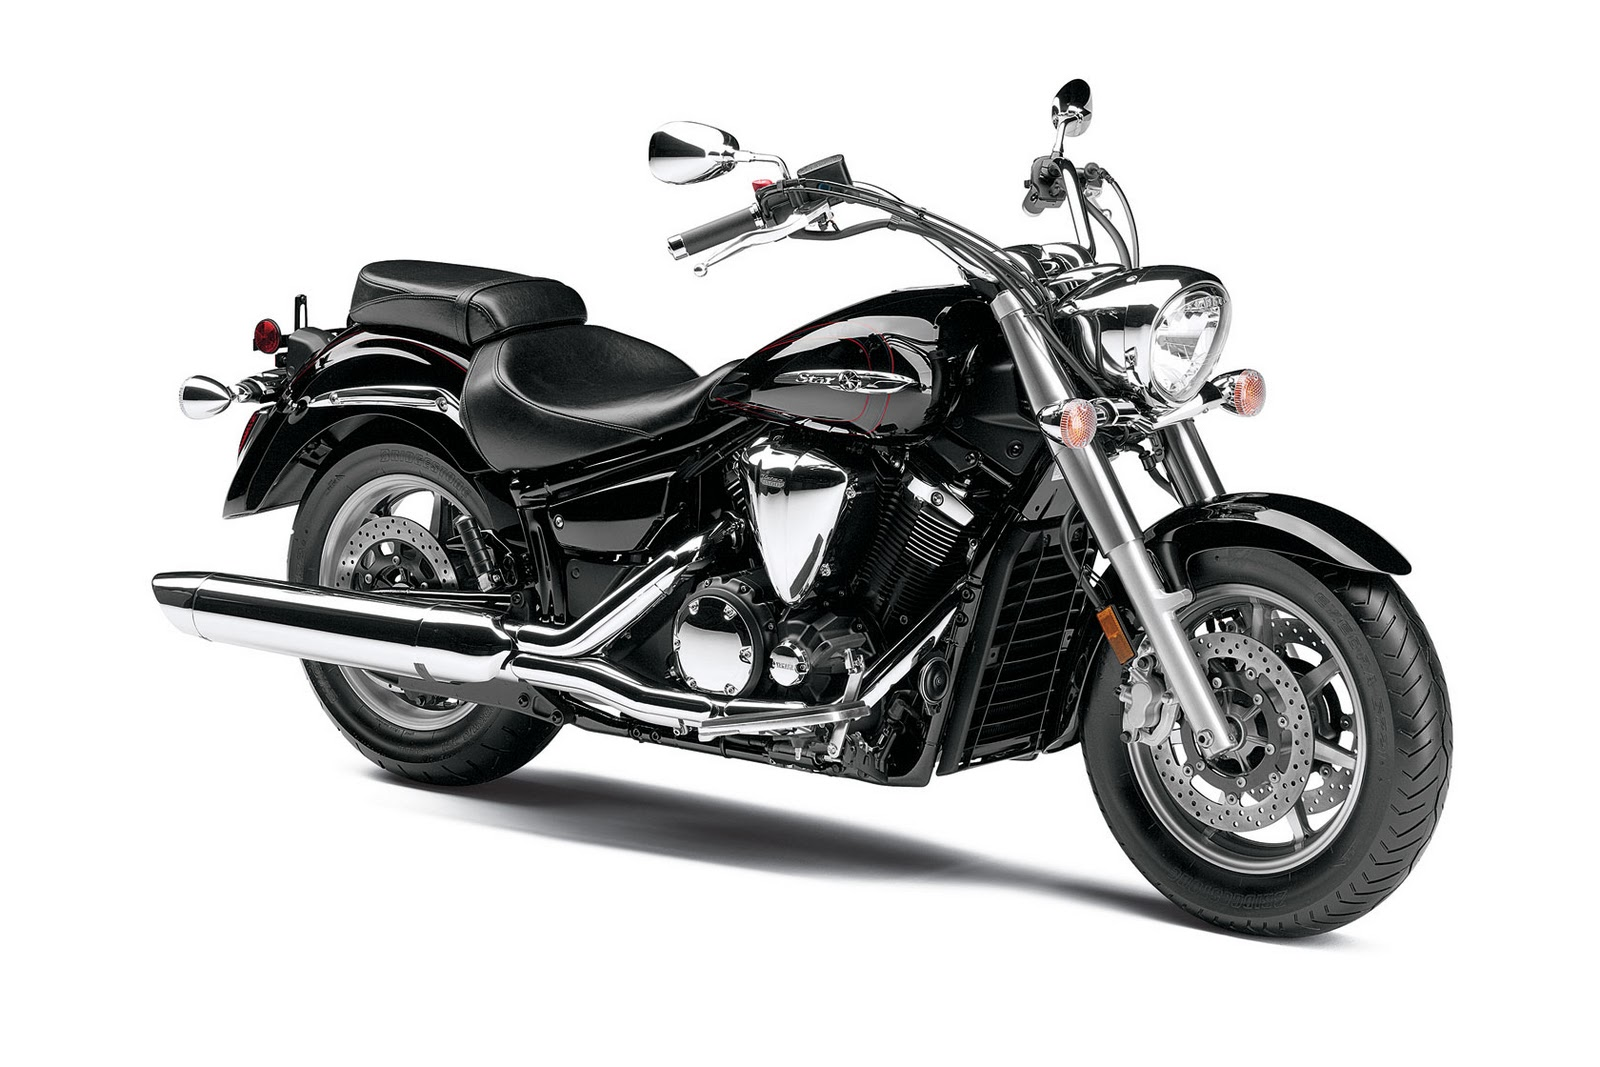 Motorcycle pictures yamaha v star 1300 2011 for Yamaha 1300 motorcycle